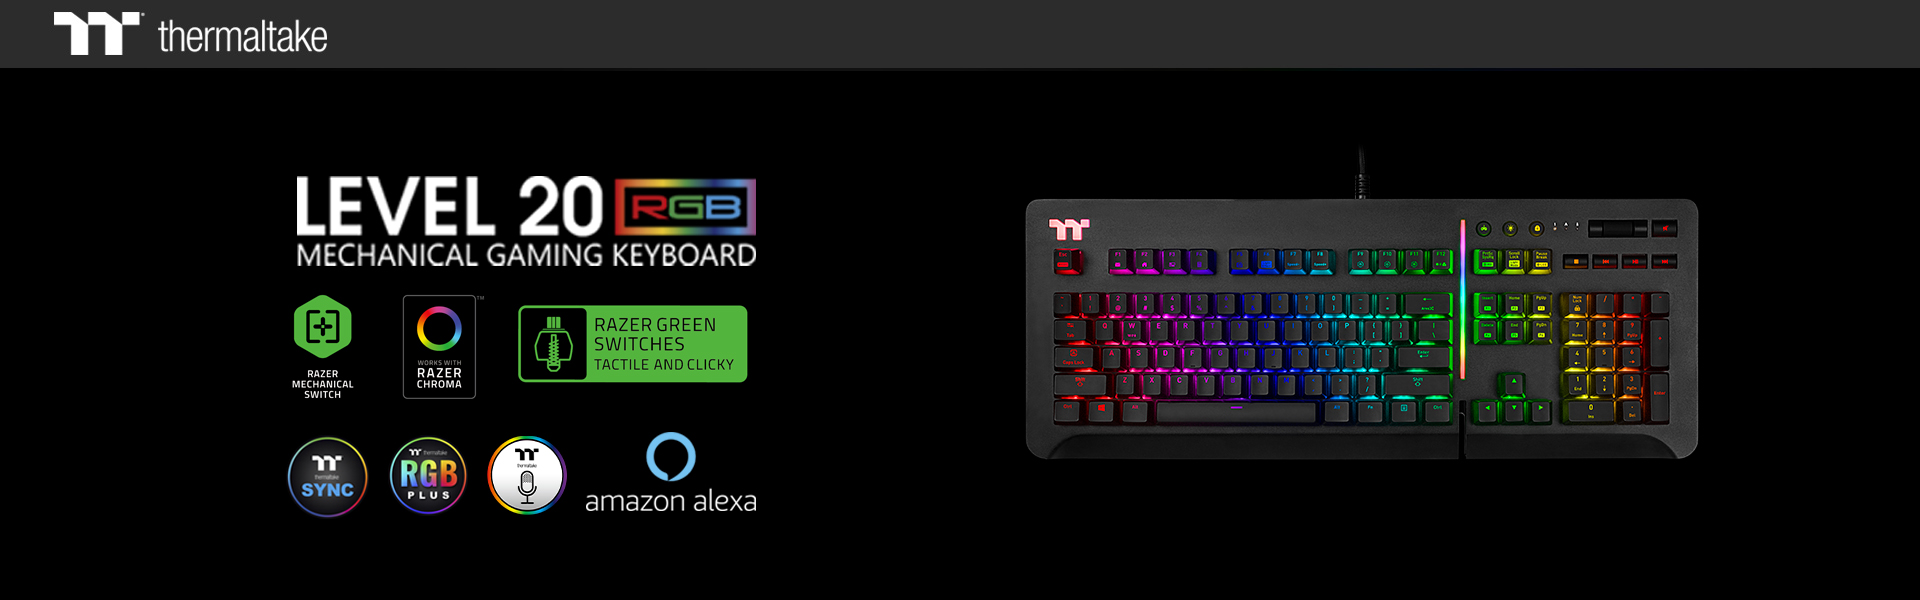 Thermaltake Gaming Level 20 RGB Gaming Keyboard Razer Green Switch 1